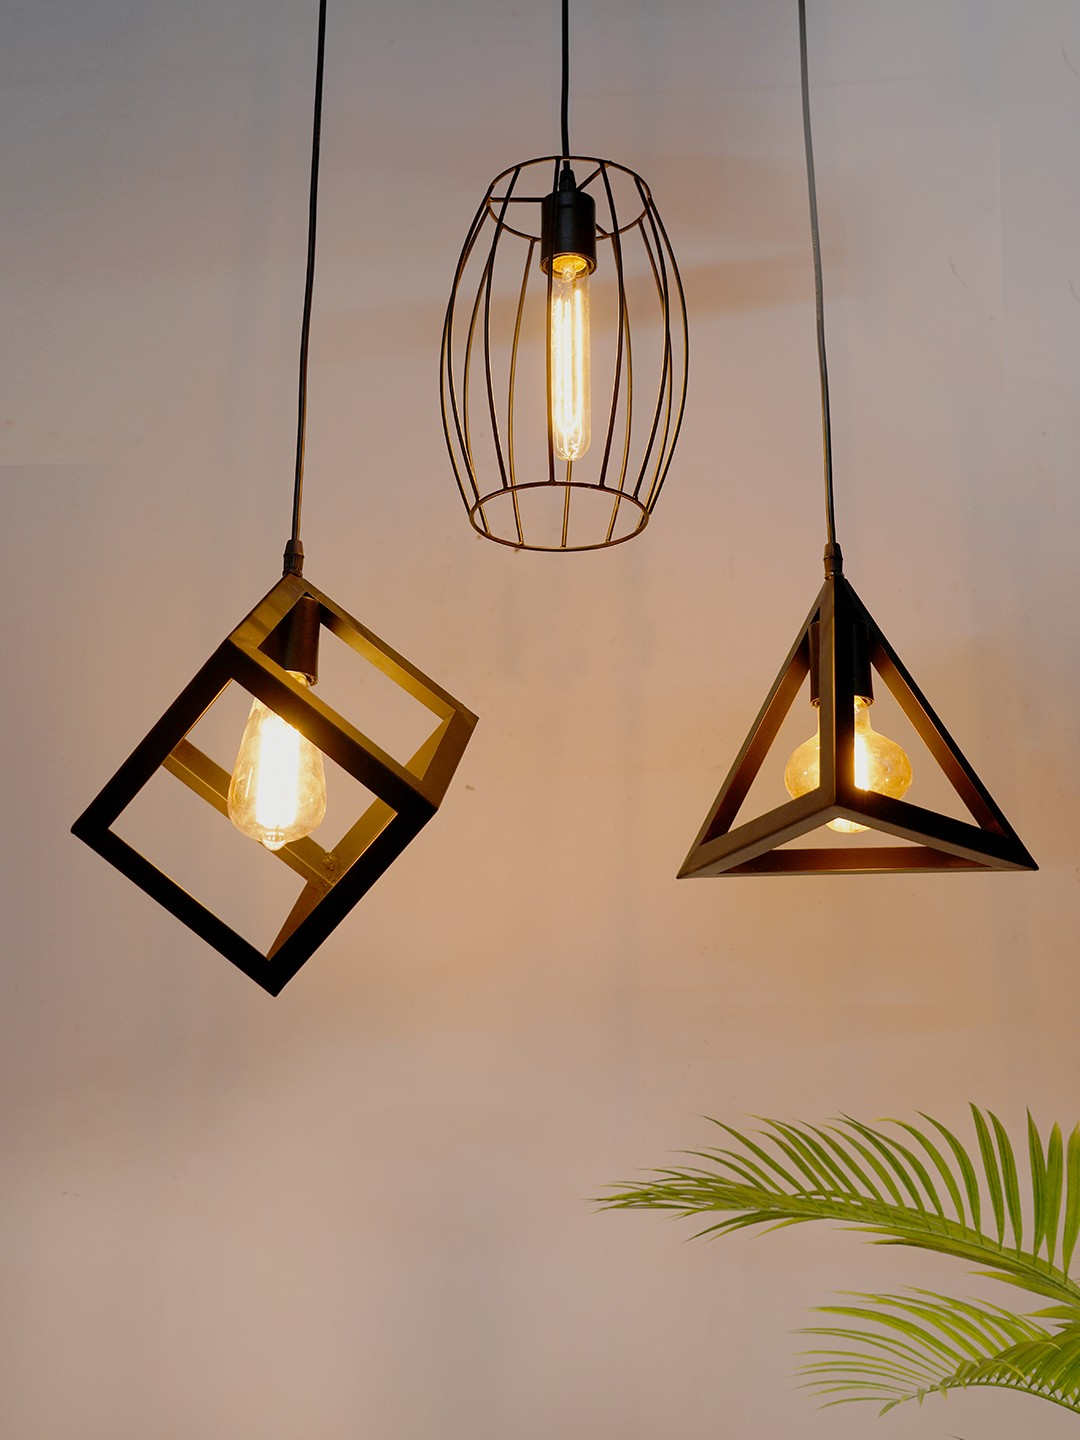 Set of 3 industrial Square WireDrum and Triangle Hanging Lights